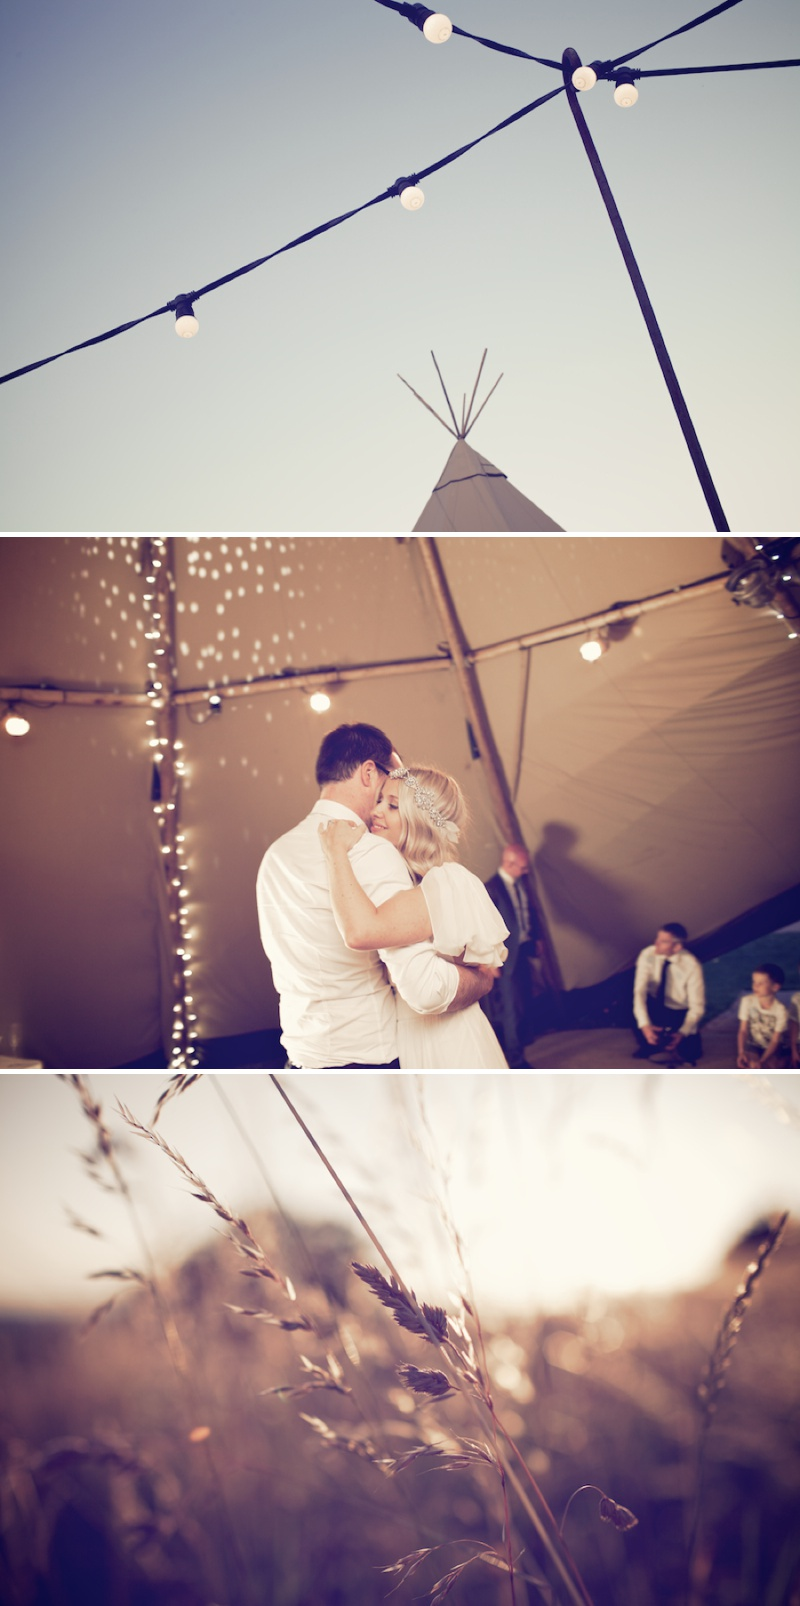 An Ethereal Bohemian Inspired Wedding At Standlow Farm With Tipis From Papakata, A David Fielden Dress And Juliet Cap Veil With A Sweet Avalanche Rose Bouquet 16